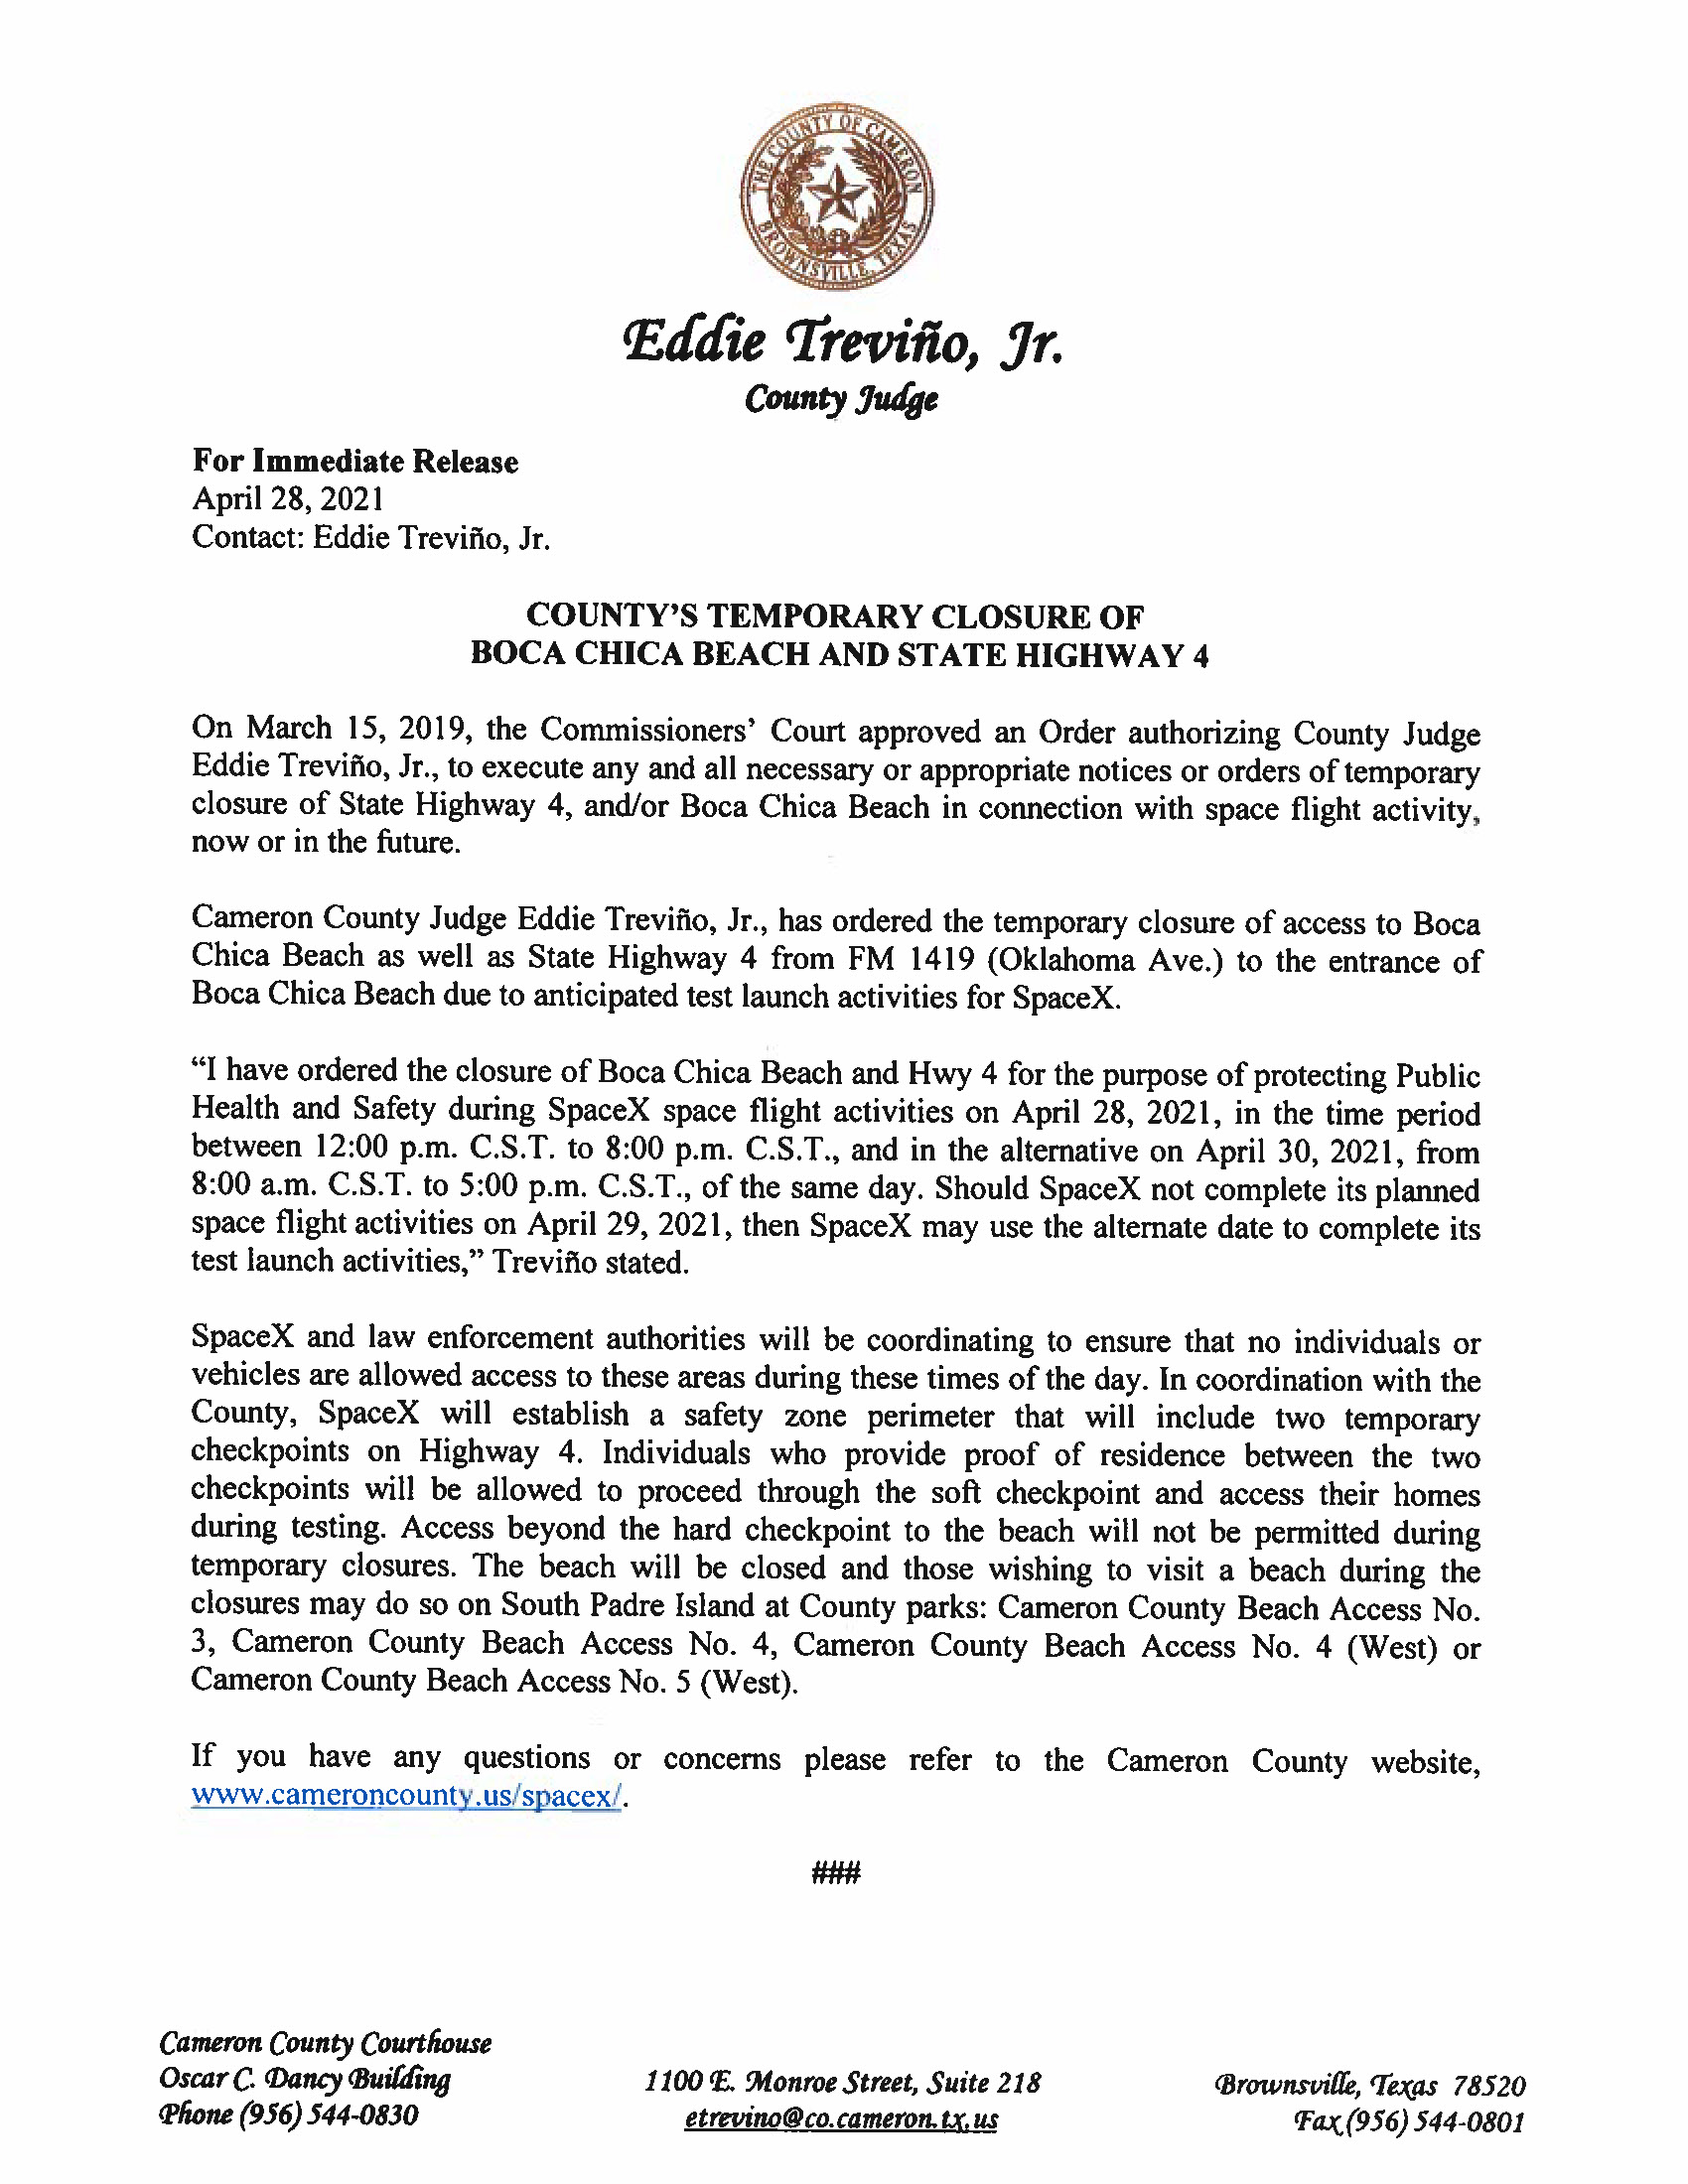 Press Release In English And Spanish.04.29.2021 Page 1